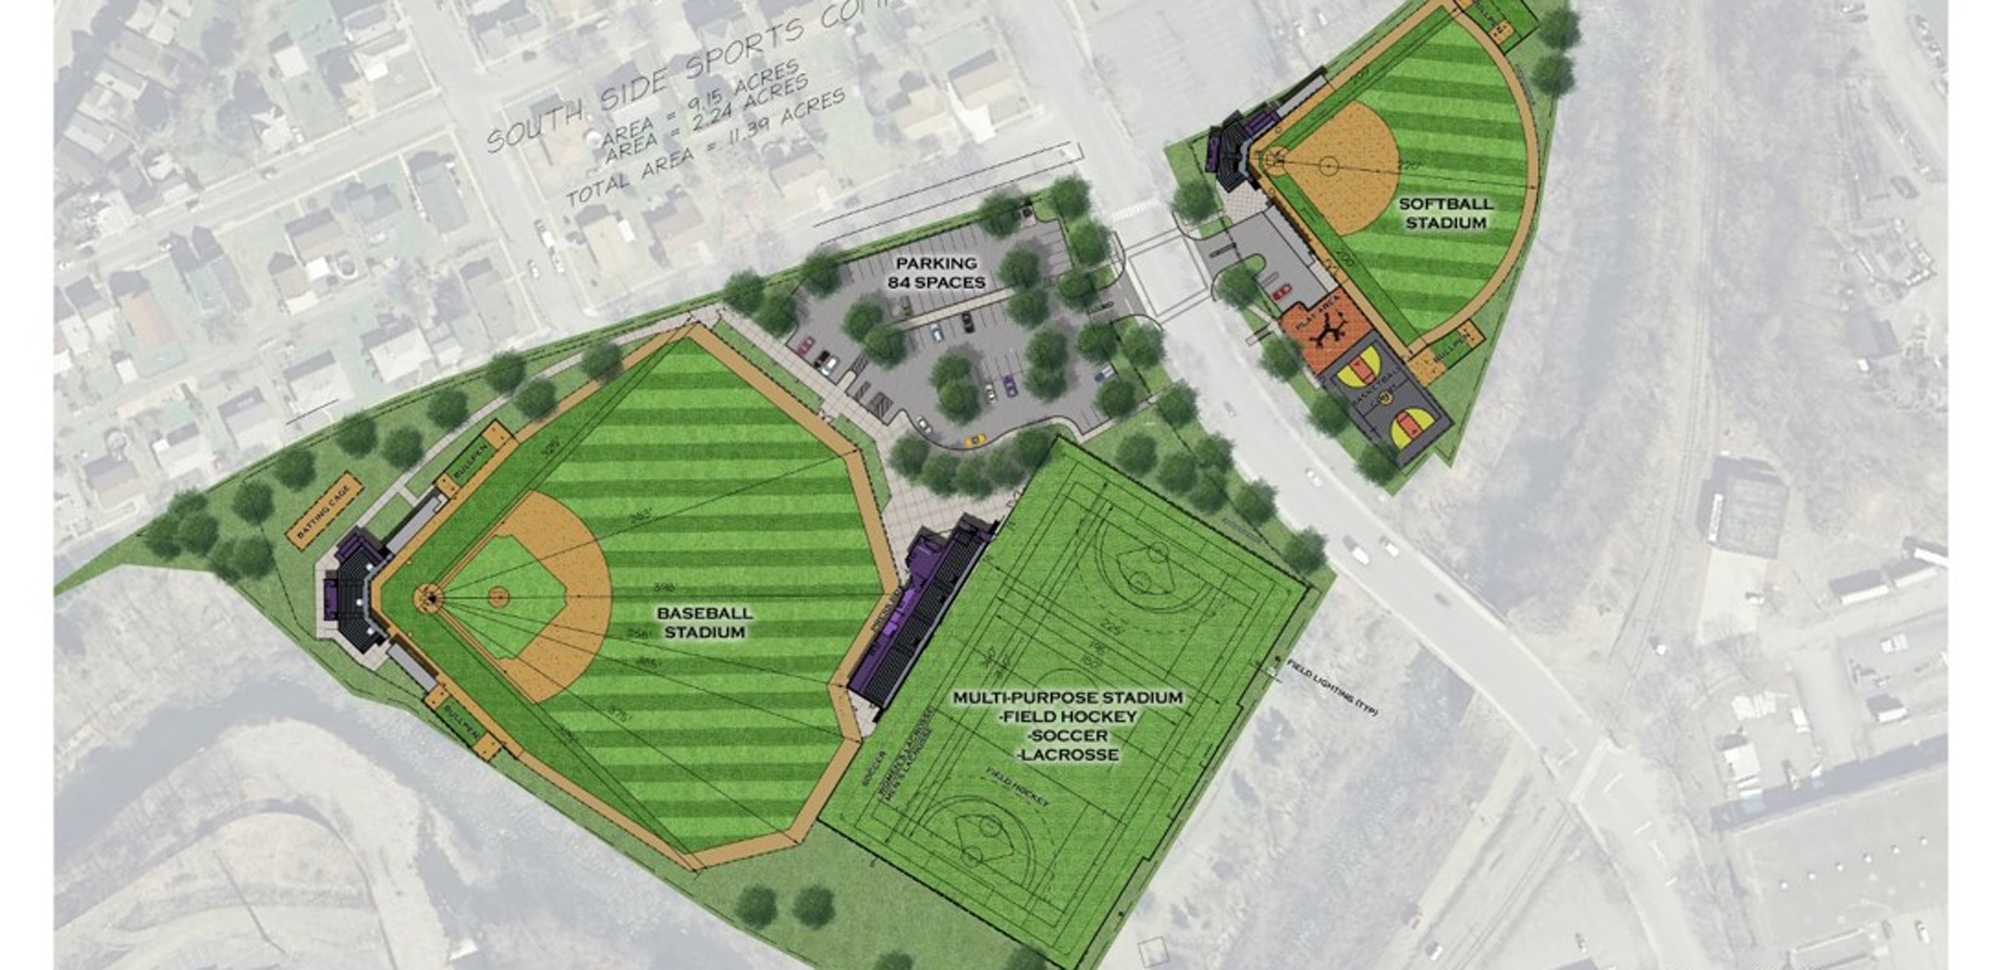 The University of Scranton Announces $14 Million Renovation of South Scranton Athletic Fields